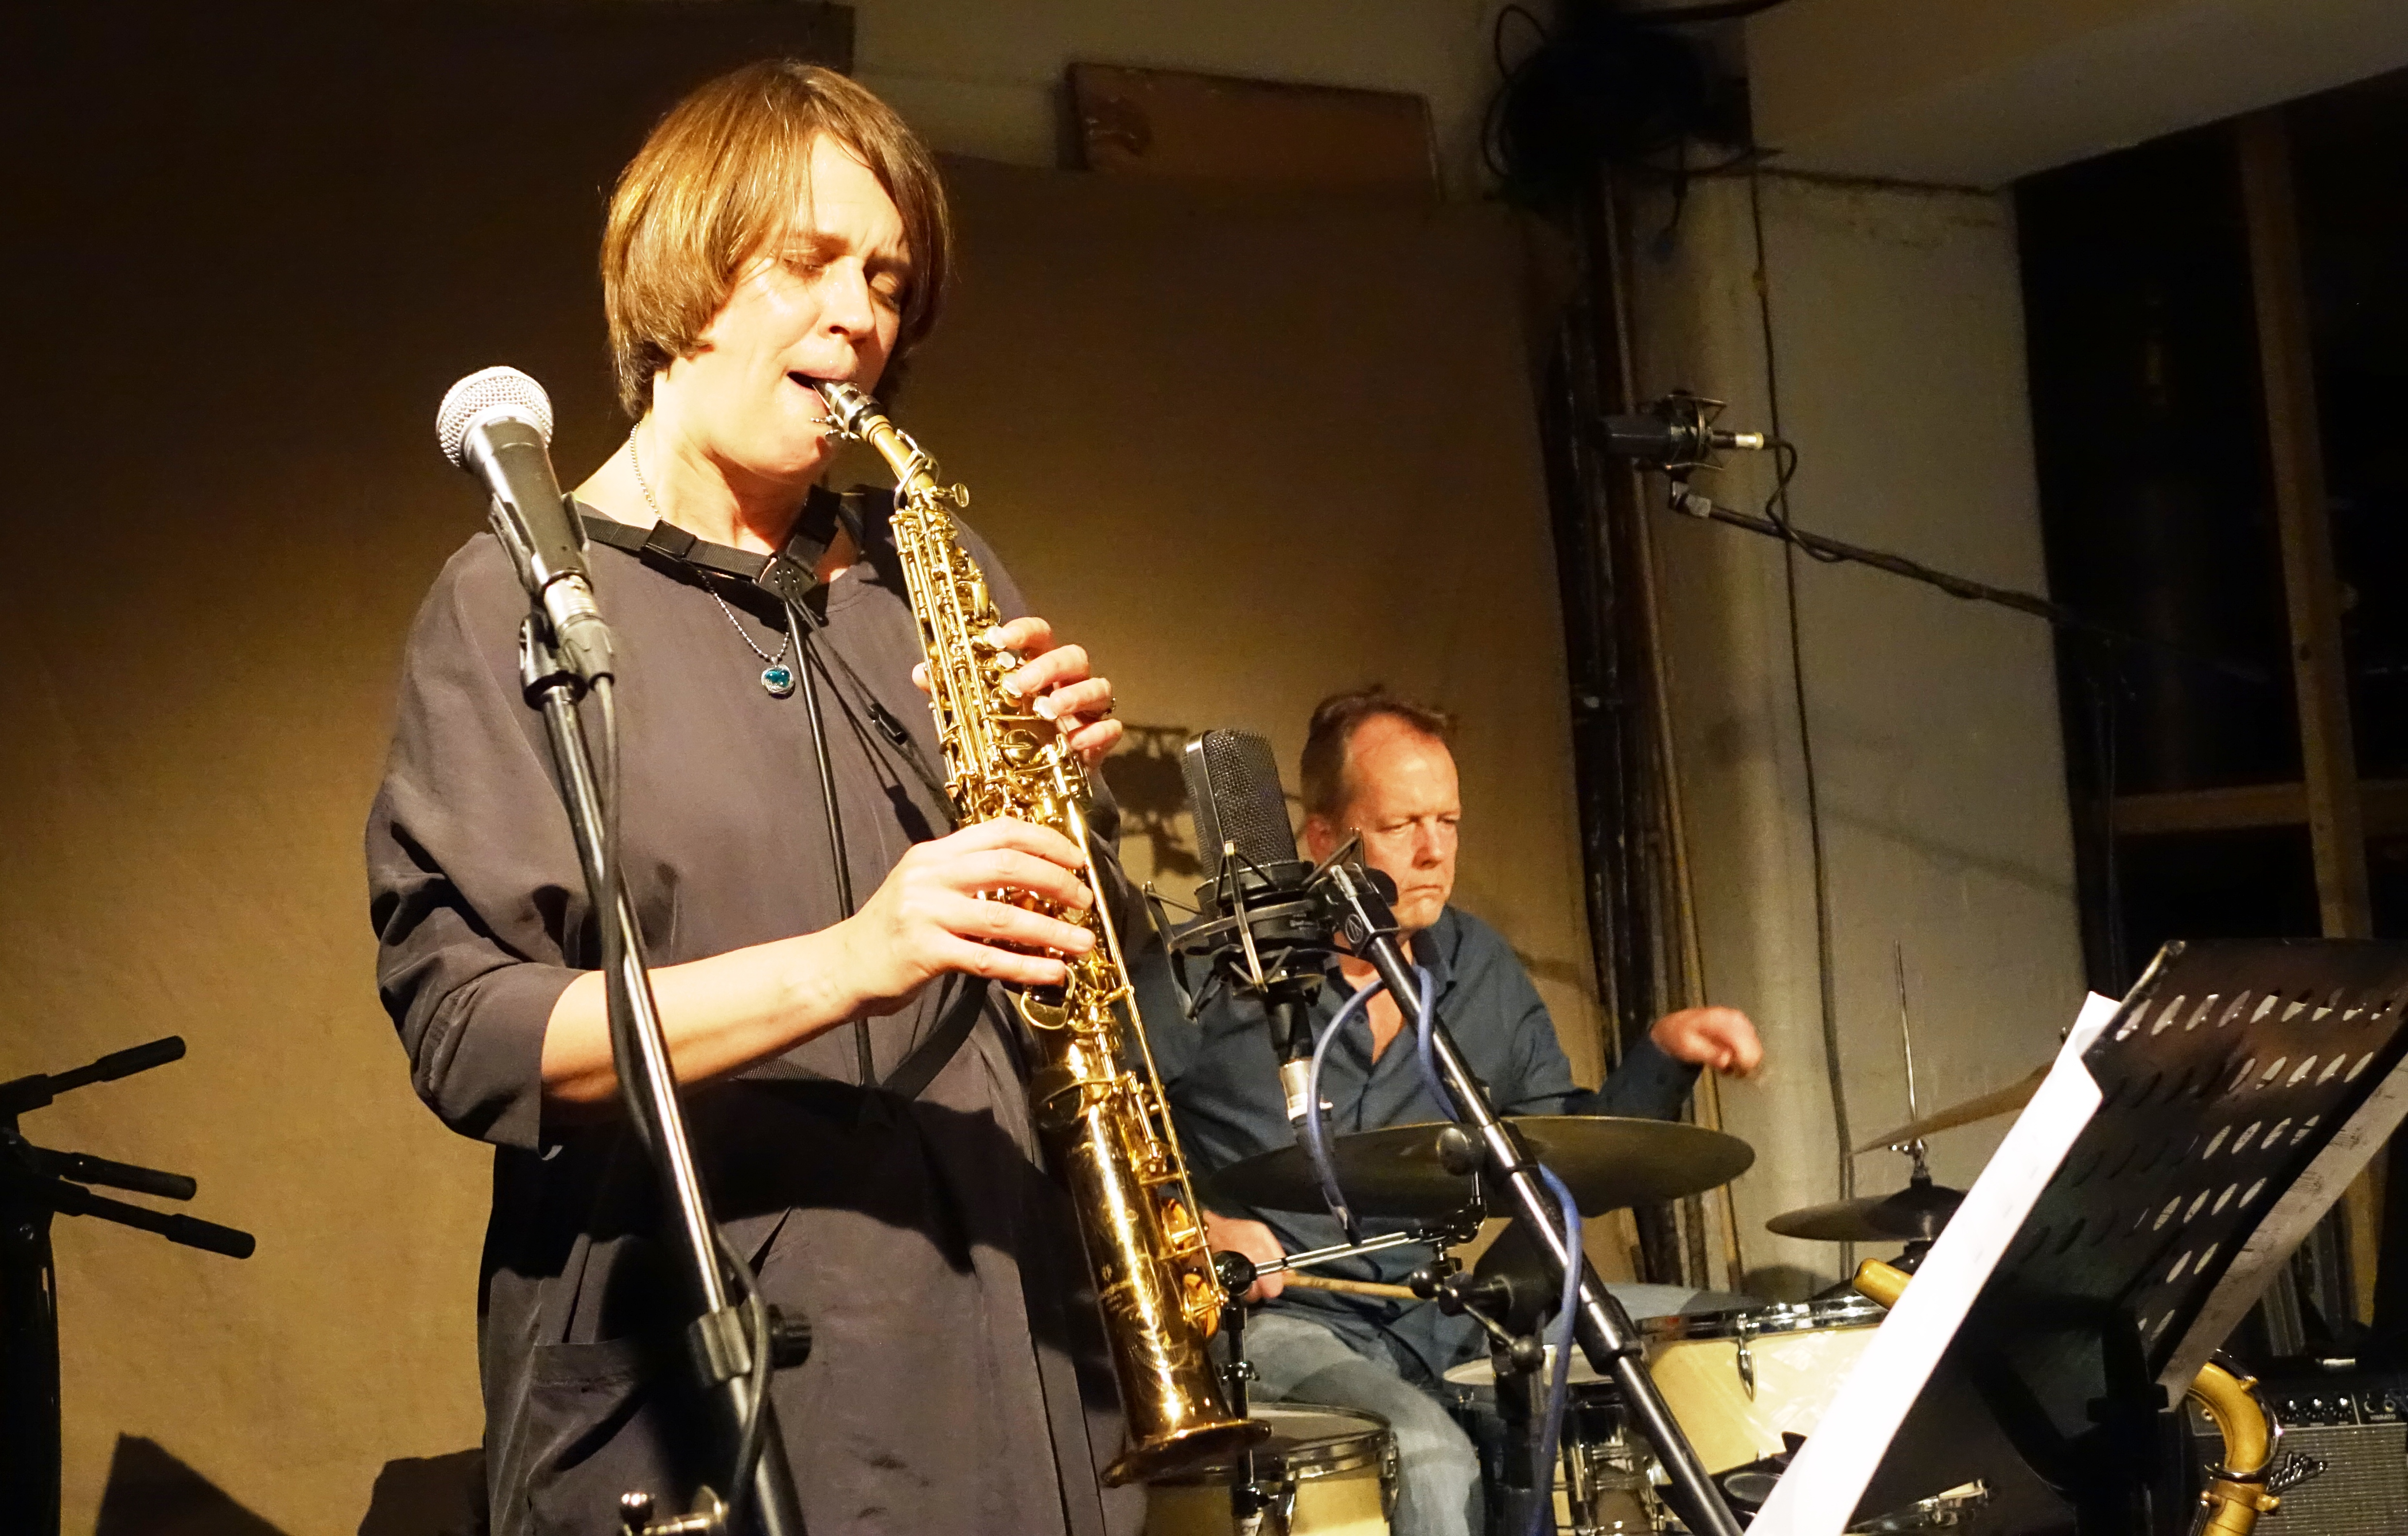 Ingrid Laubrock and Tom Rainey at Cafe Oto, London in May 2018